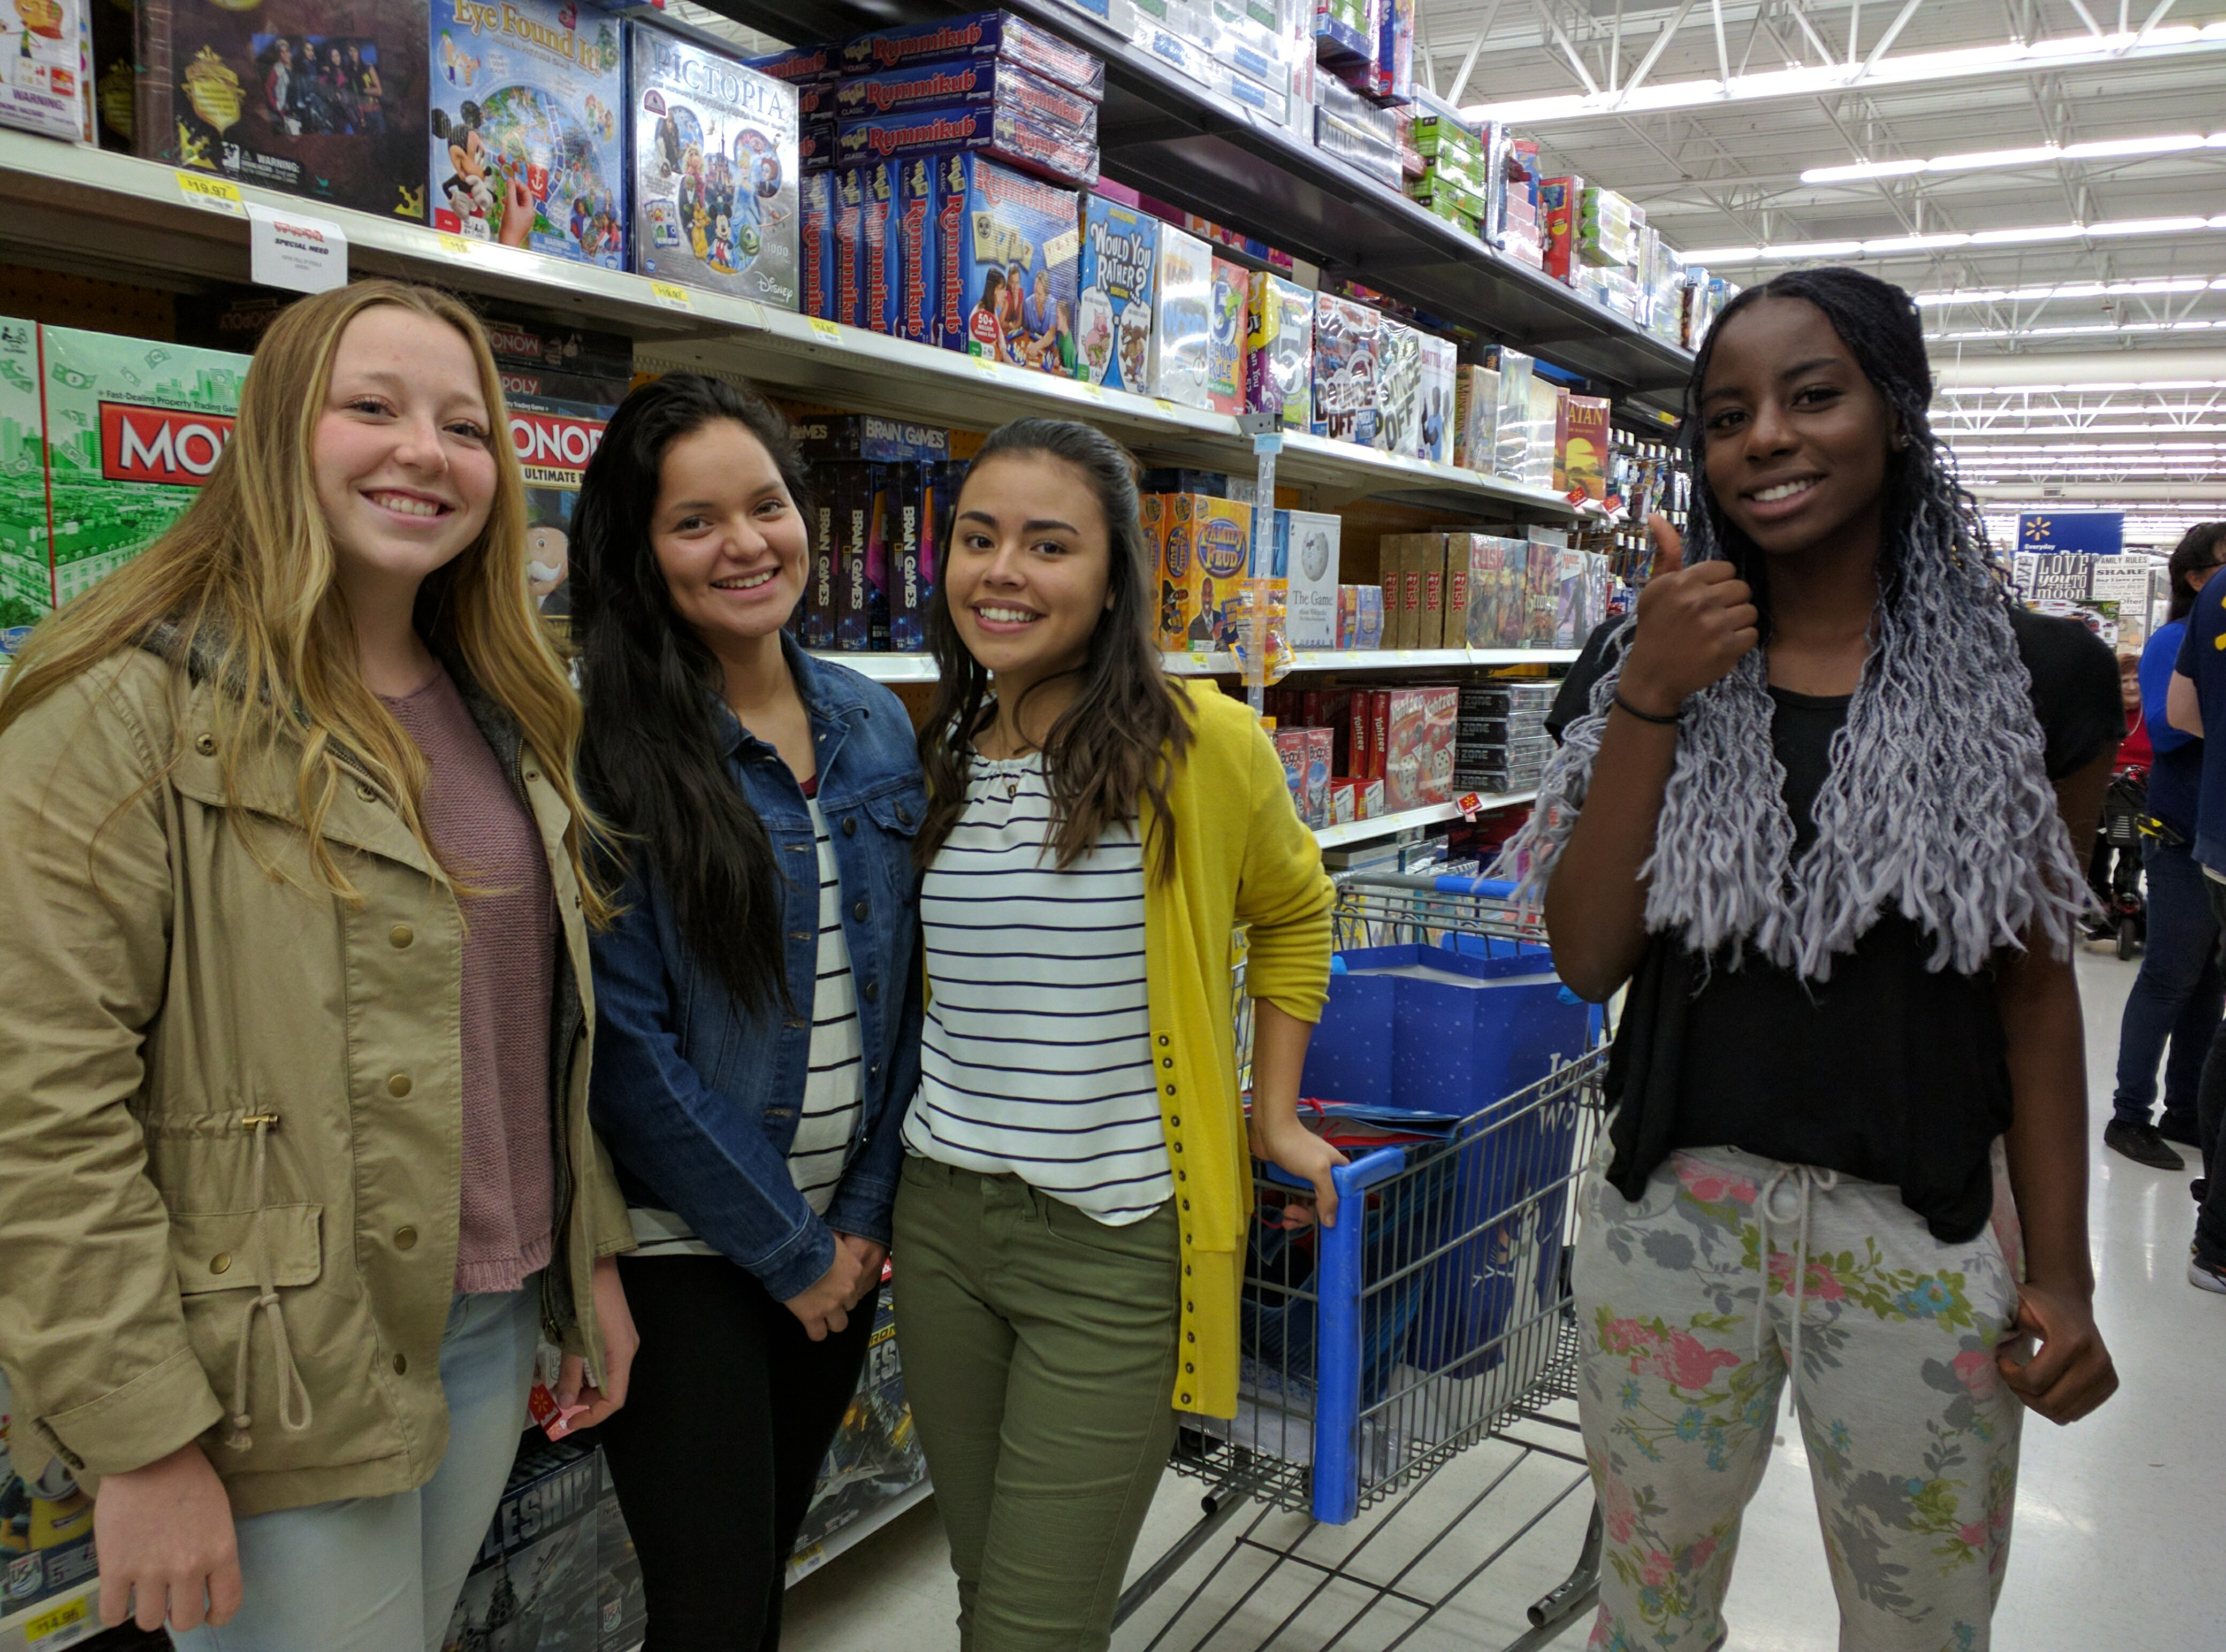 Dixie High School students shop for the school's Angel Tree project, St. George, Utah, Dec. 12, 2016   Photo by Joseph Witham, St. George News